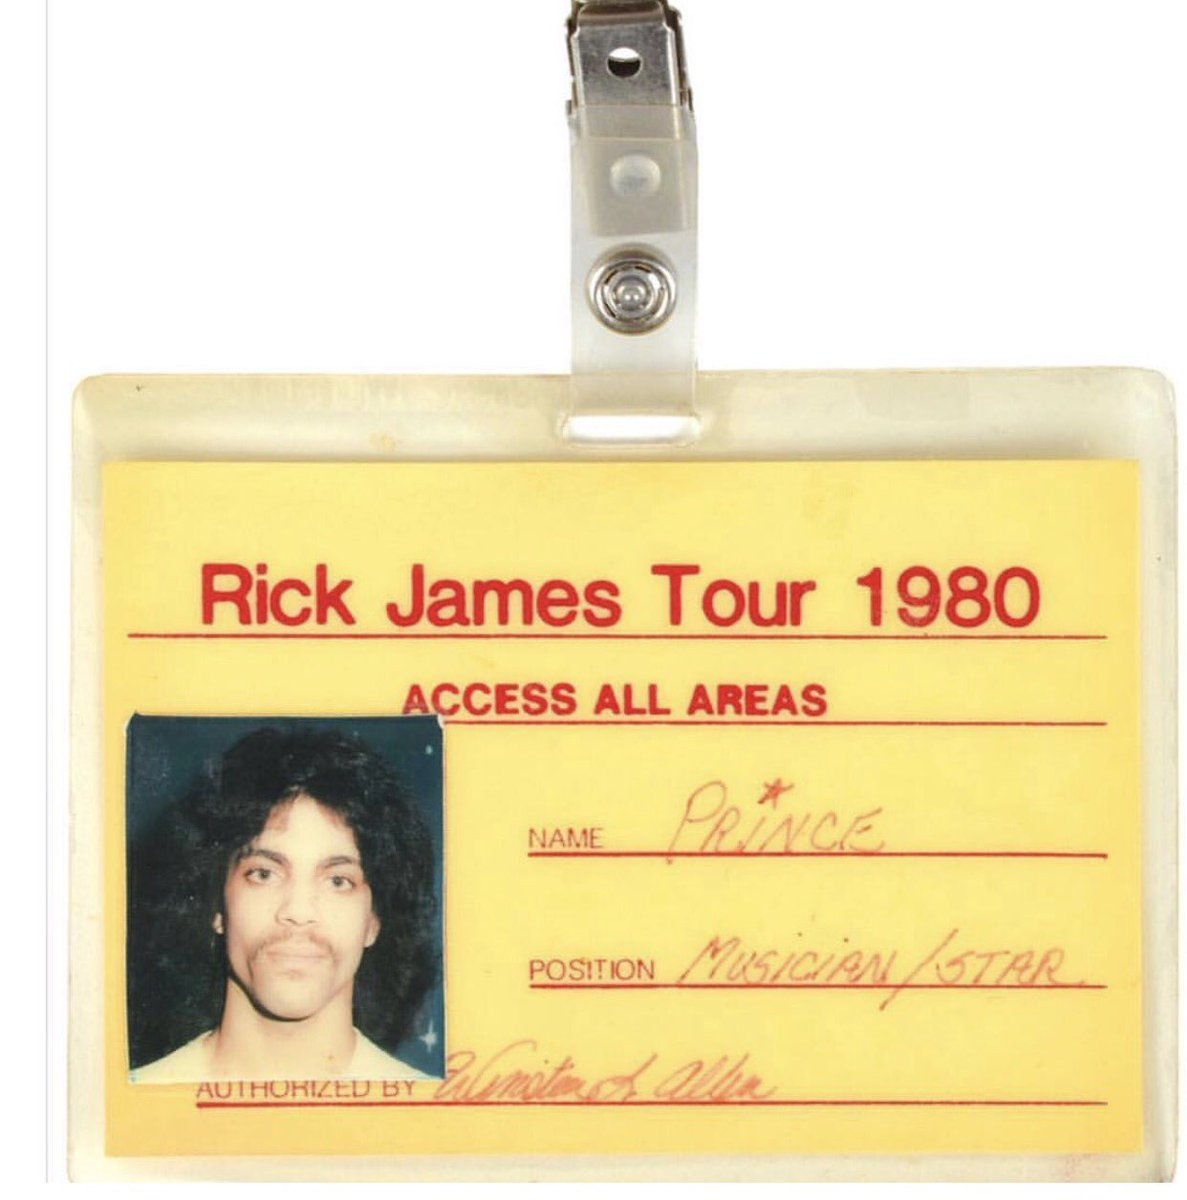 That time when this young unknown artist opened for Rick James.  Please look at what he wrote in the 'position' section.  #HeKnew #tbt